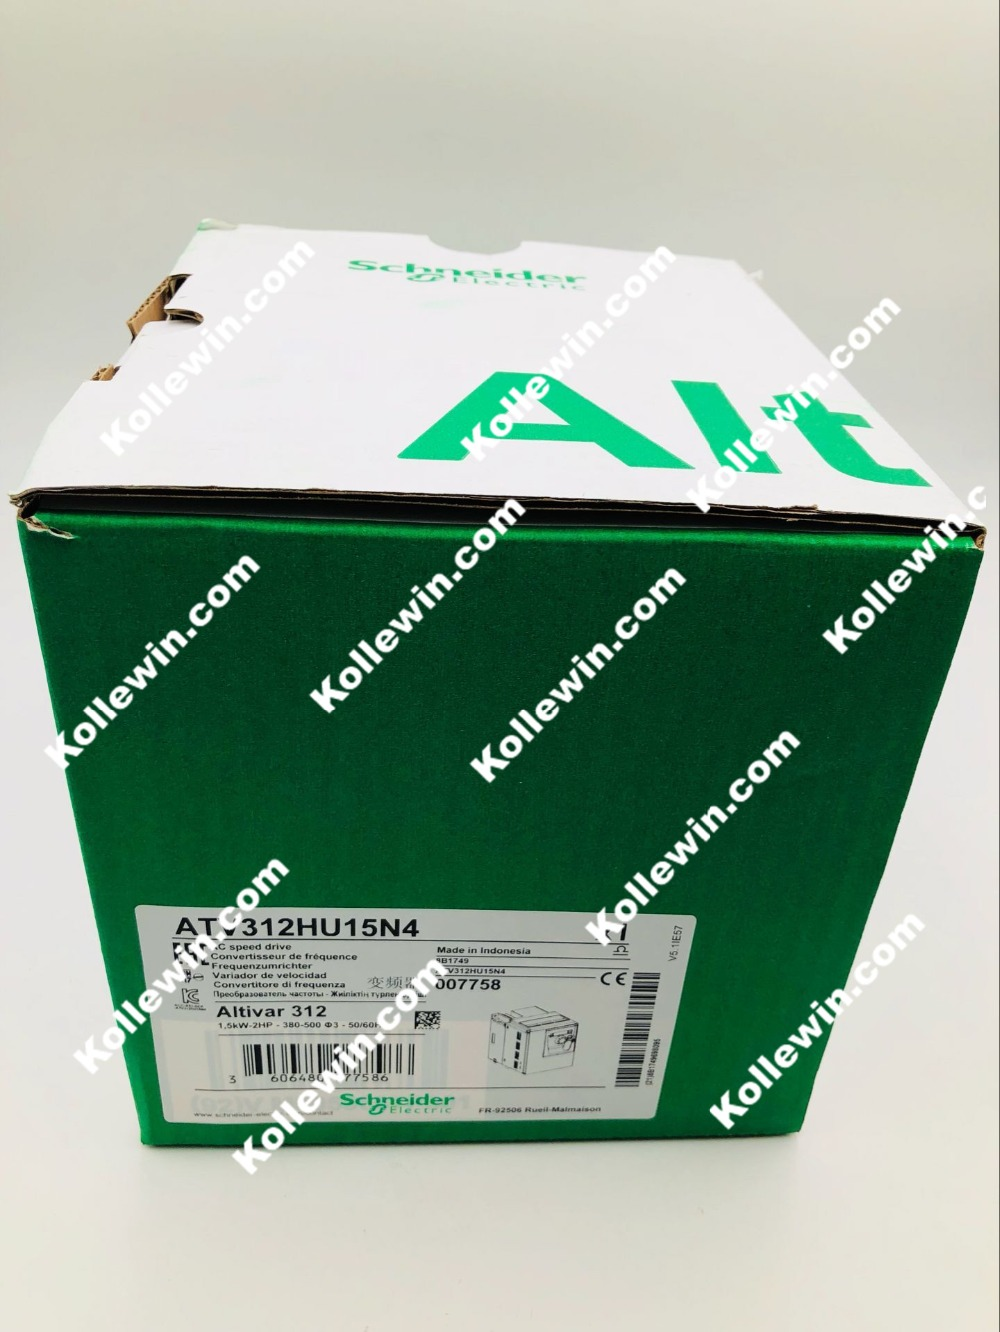 Atv312hu15n4 user manual